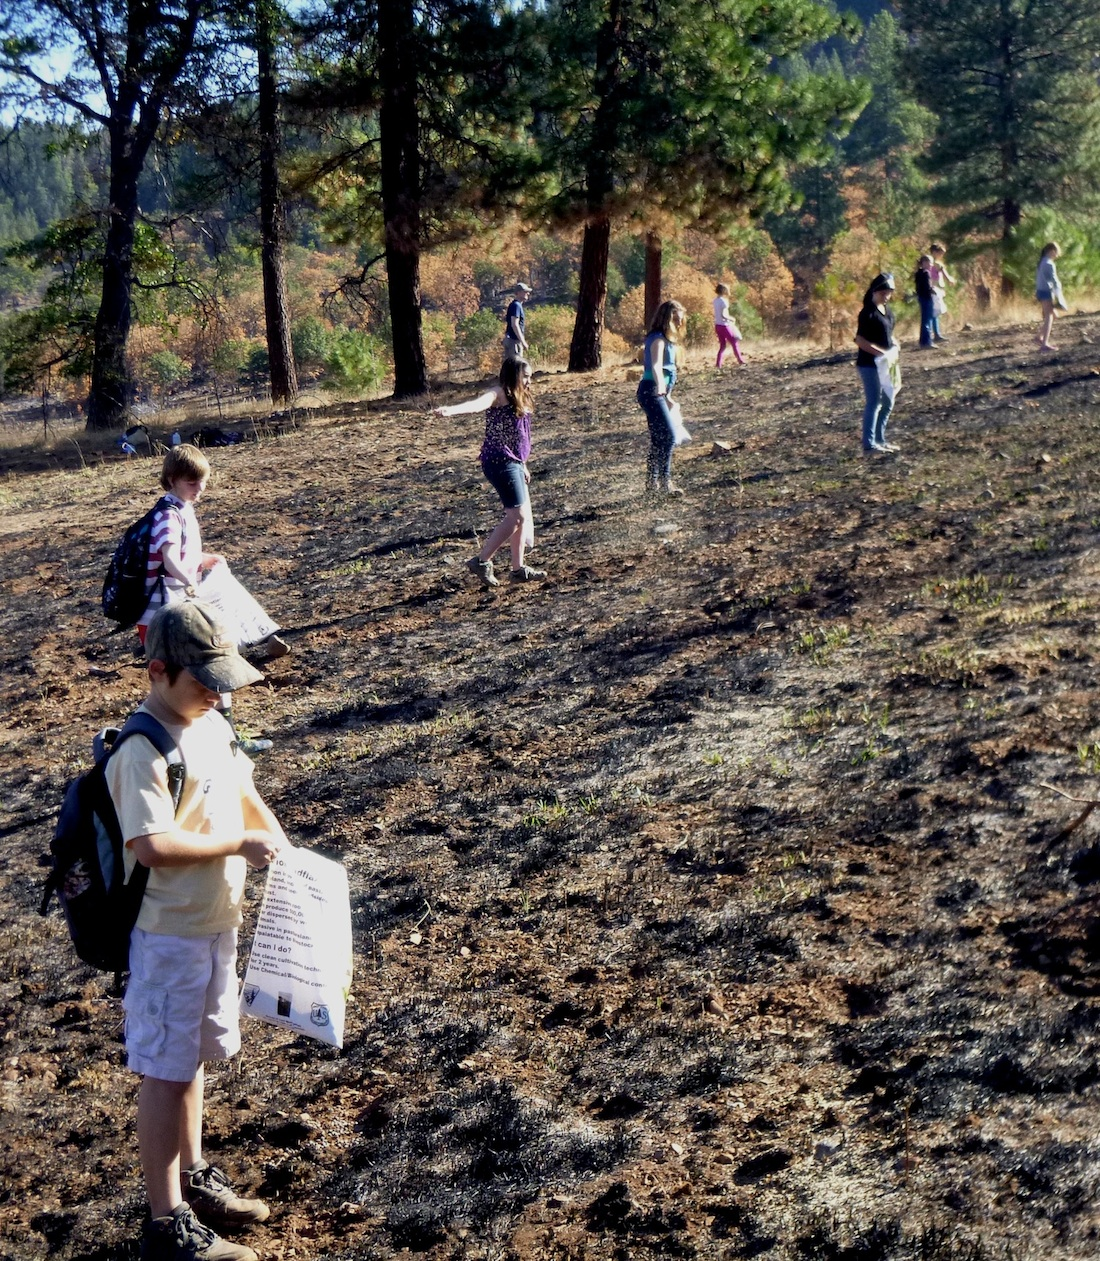 Pinehurst students plant seed after 2014 Oregon gulch fire in cascade-siskiyou national monument. Image courtesy of Jim Impara. Pinehurst school is located within the cascade-siskiyou national monument.